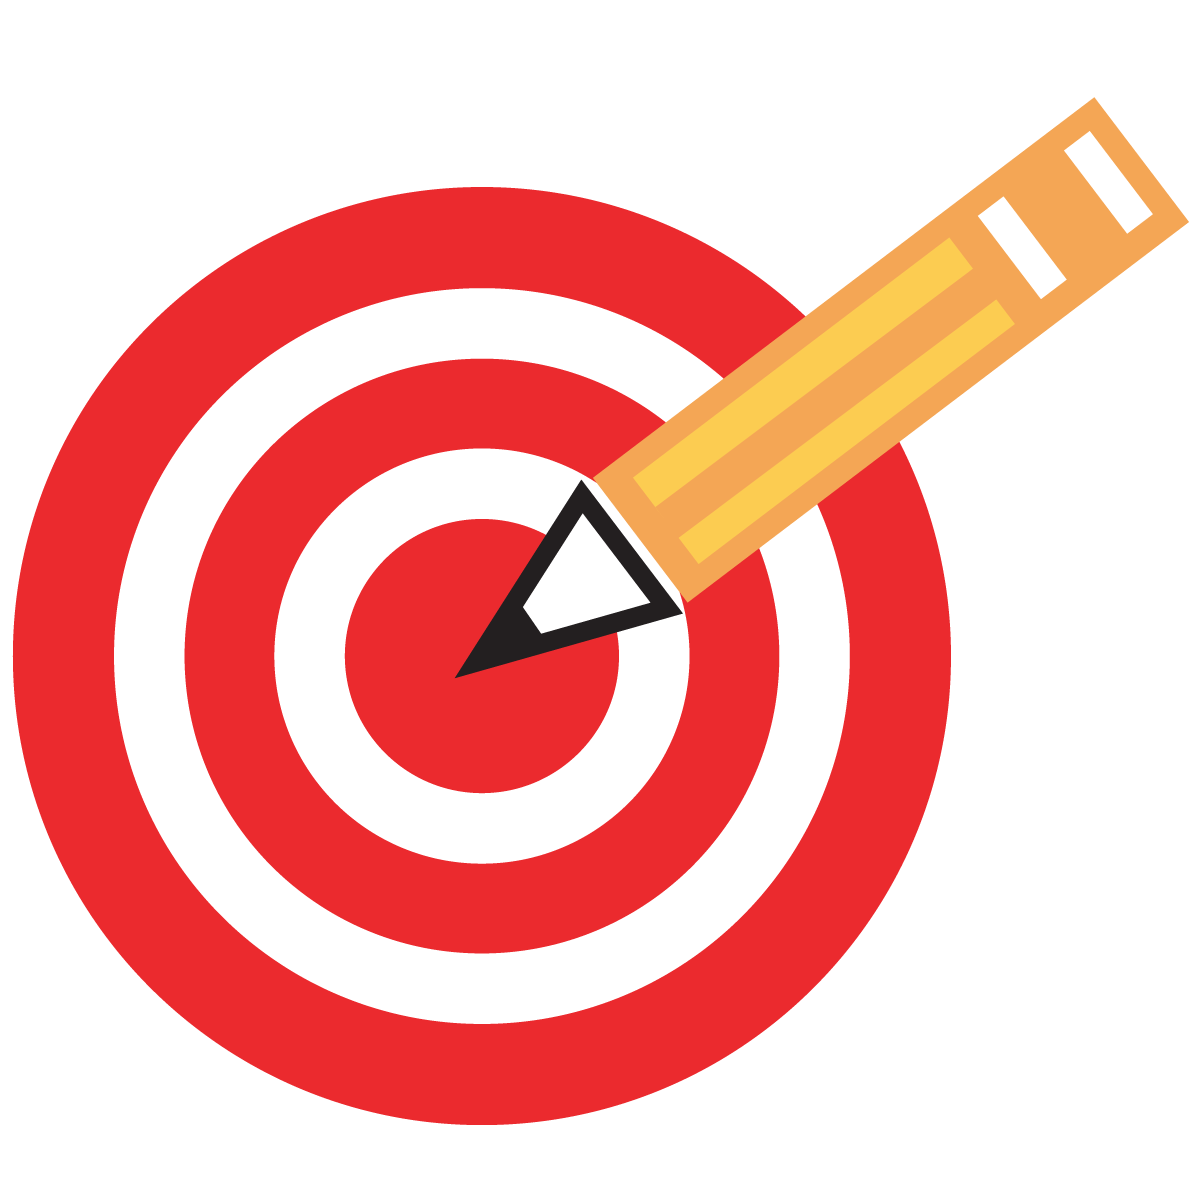 Targeting vector learning. Target clipart